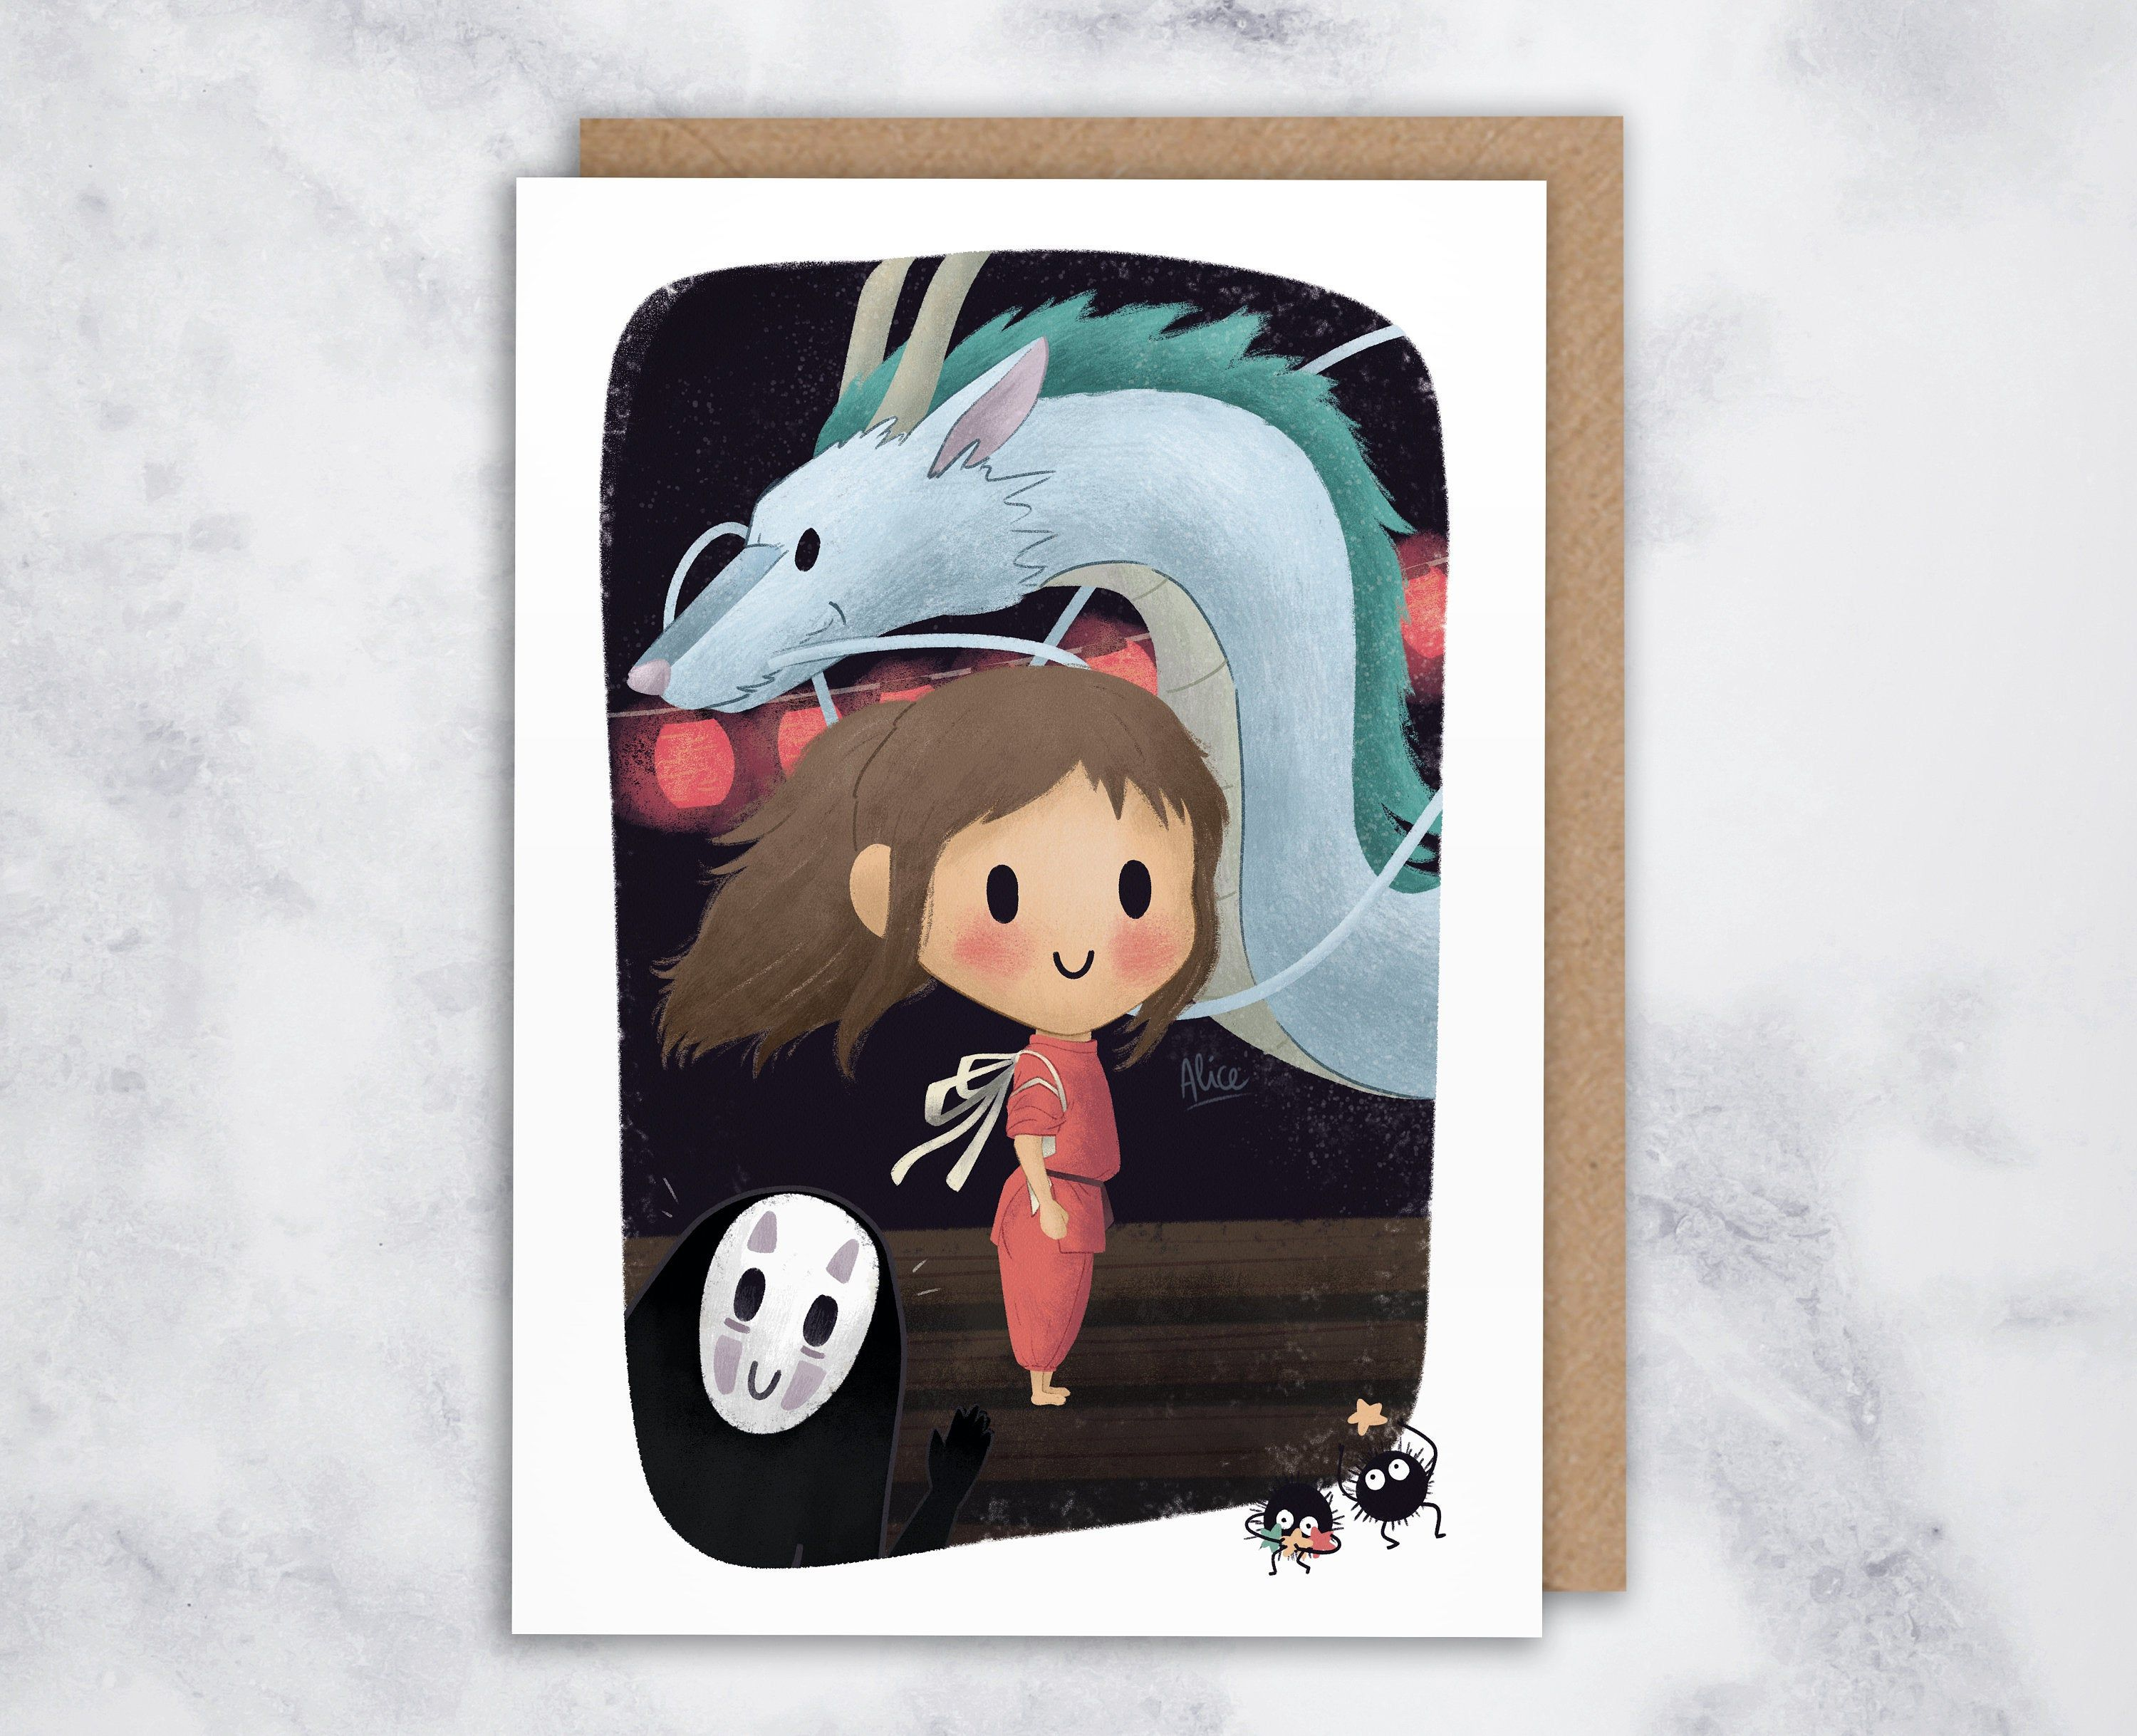 Spirited Away Card Studio Ghibli Print Chihiro Card Cute Greeting Card Card For Anime Fan In 2020 Studio Ghibli Ghibli Japanese Animation